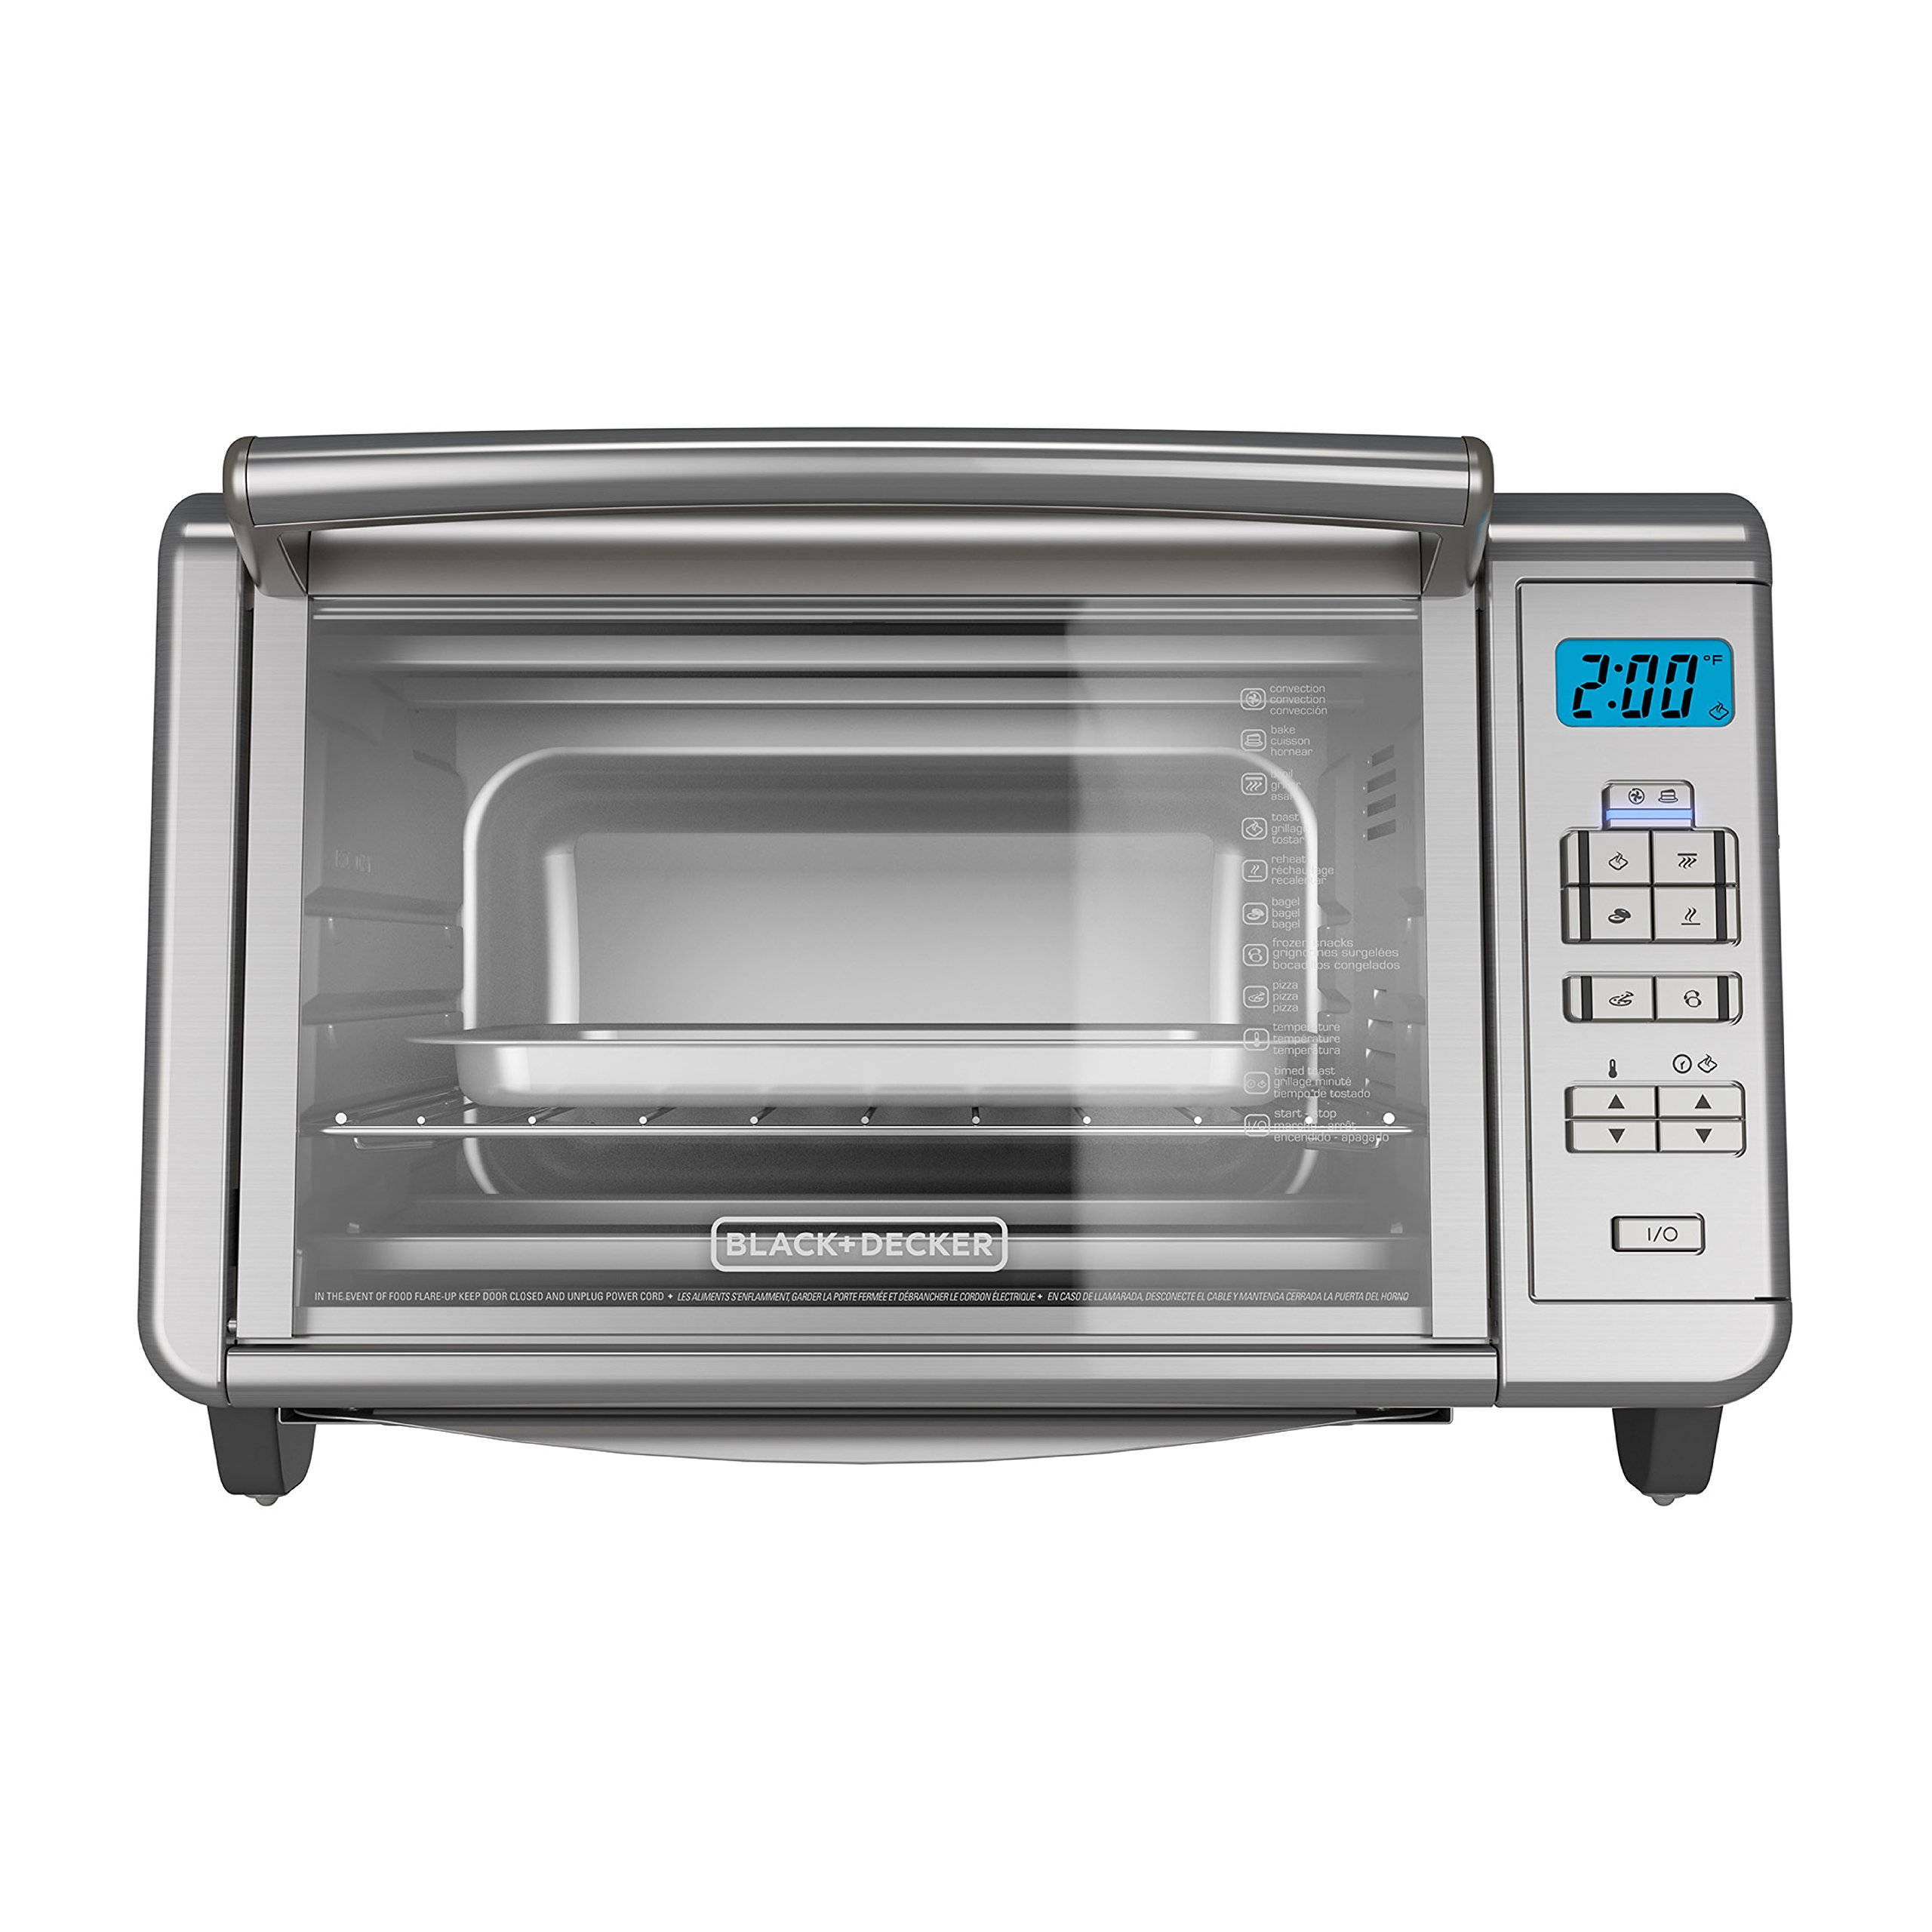 beach larger hamilton toaster amazon dp view oven com broiler slice ovens